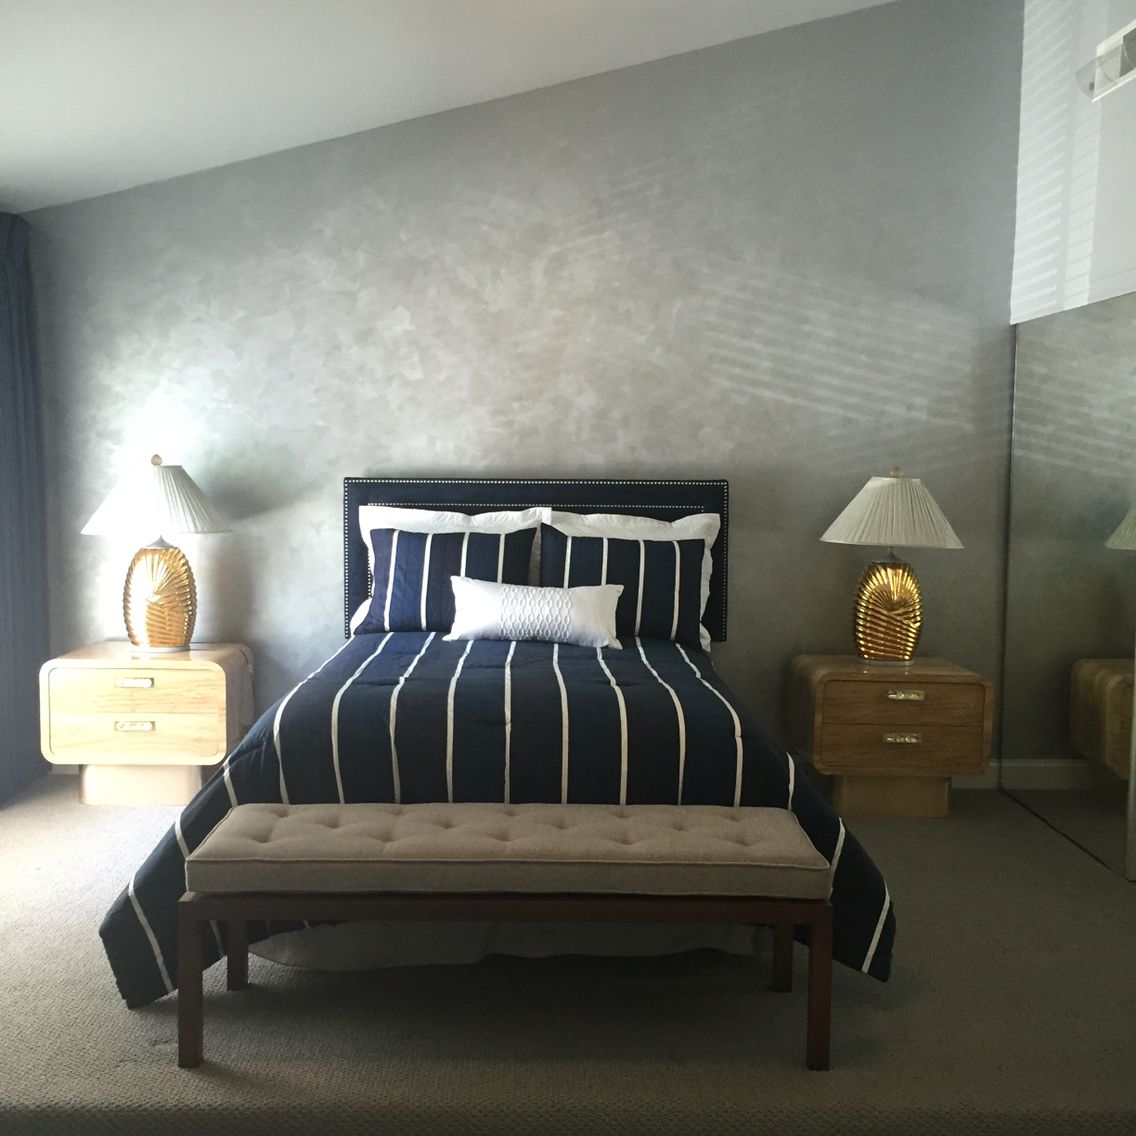 Metallic Accent Wall Besroom: Modern Masters Platinum On Bedroom Accent Wall. (With